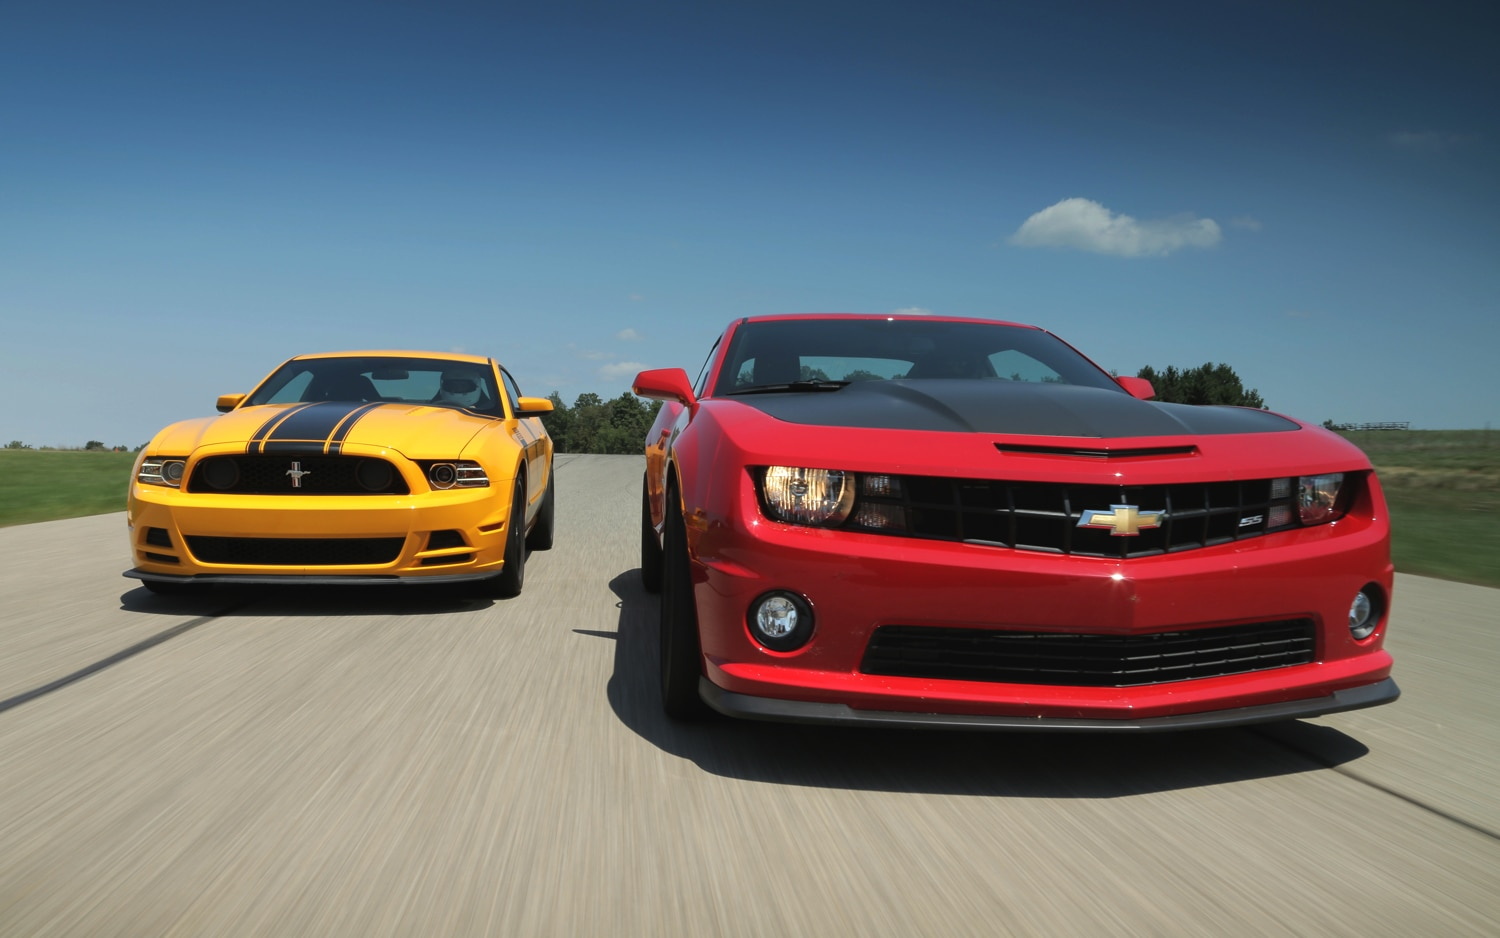 2013 Ford Mustang Boss 302 Vs 2013 Chevrolet Camaro SS 1LE Front View 21